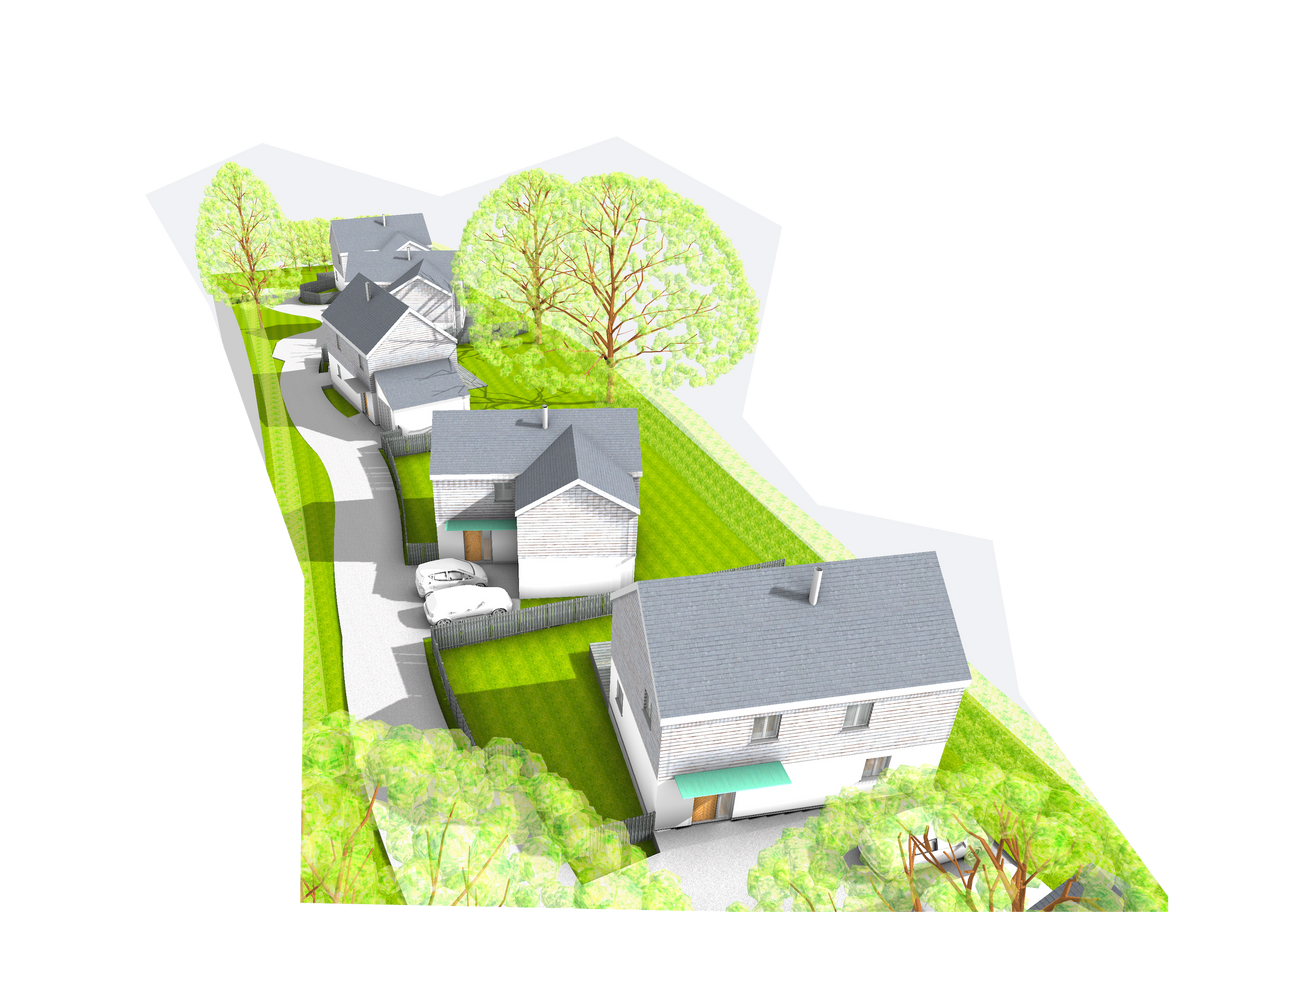 Housing Project in Falmouth